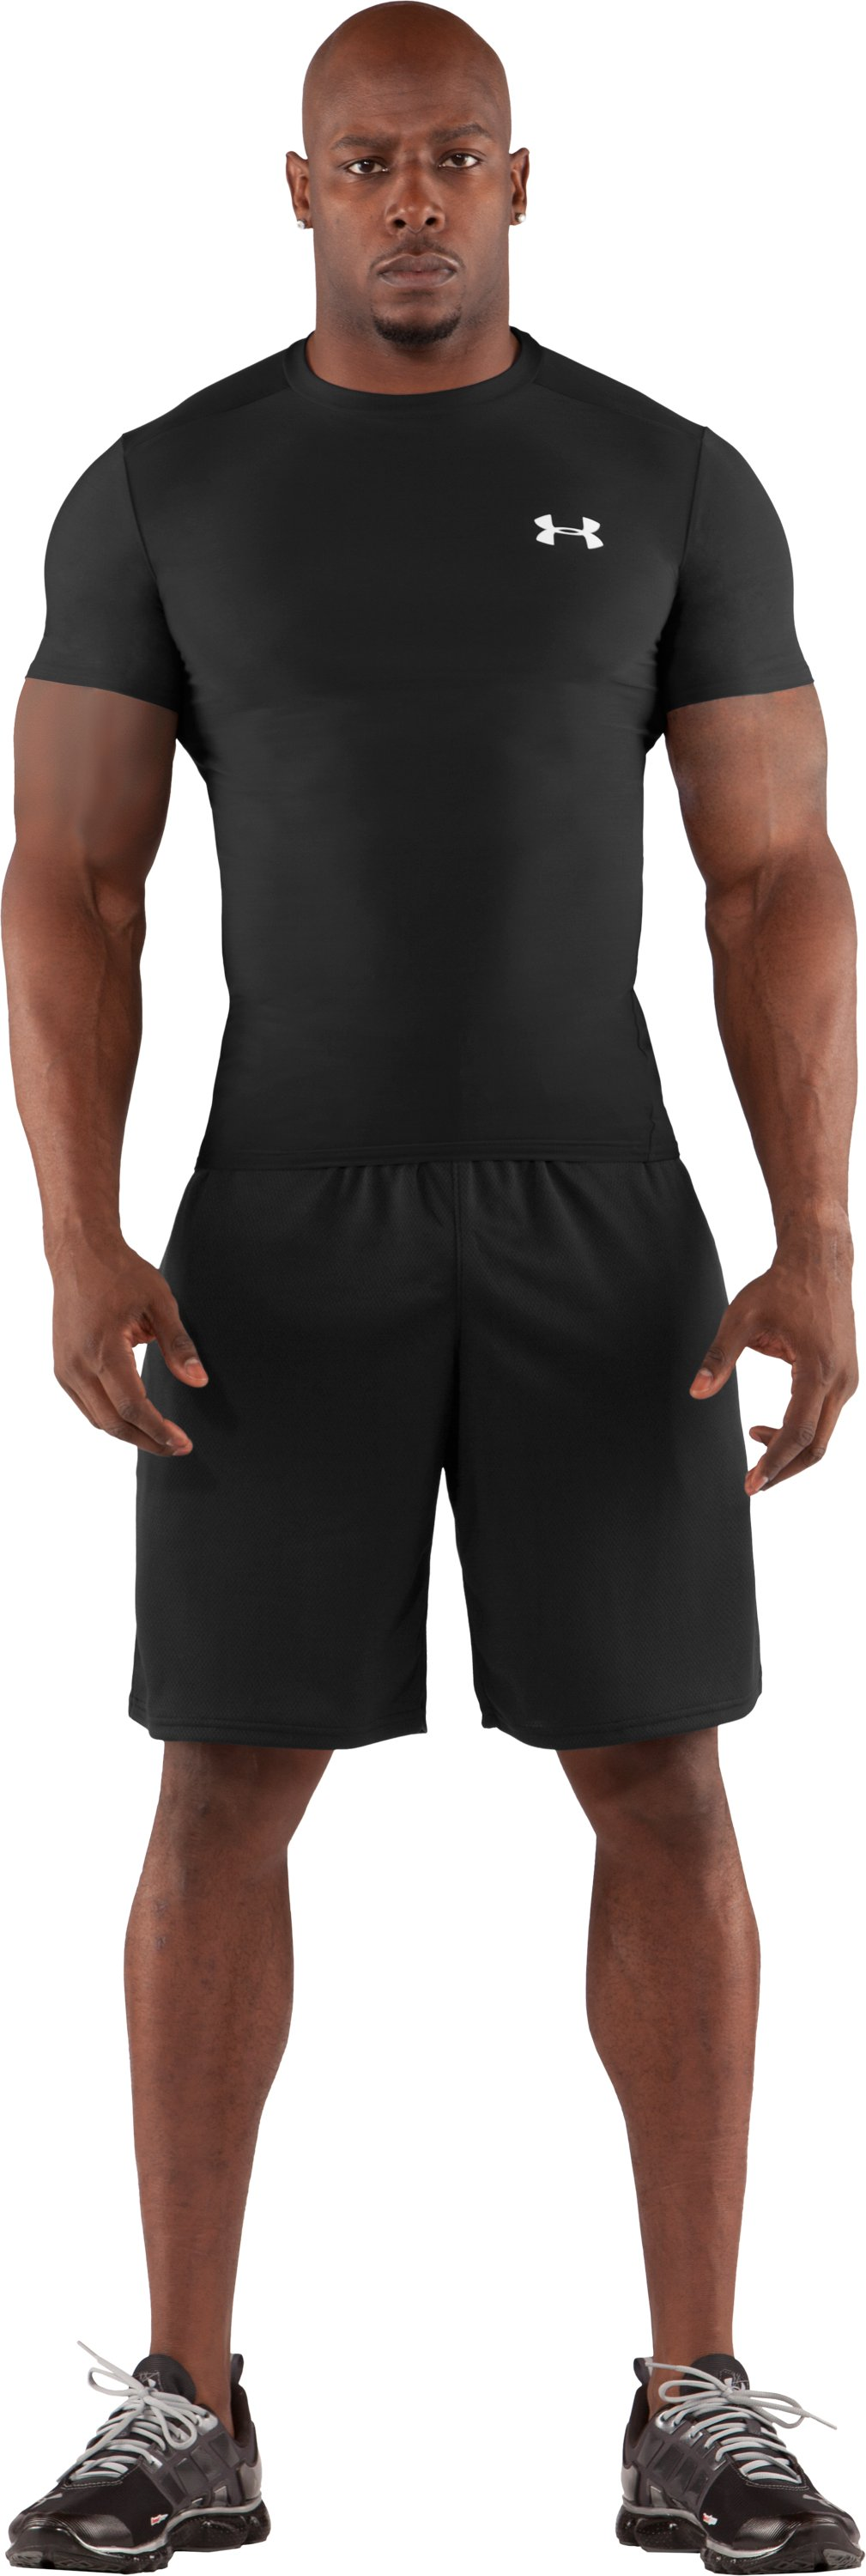 Men's HeatGear® Compression Short Sleeve T-Shirt, Black